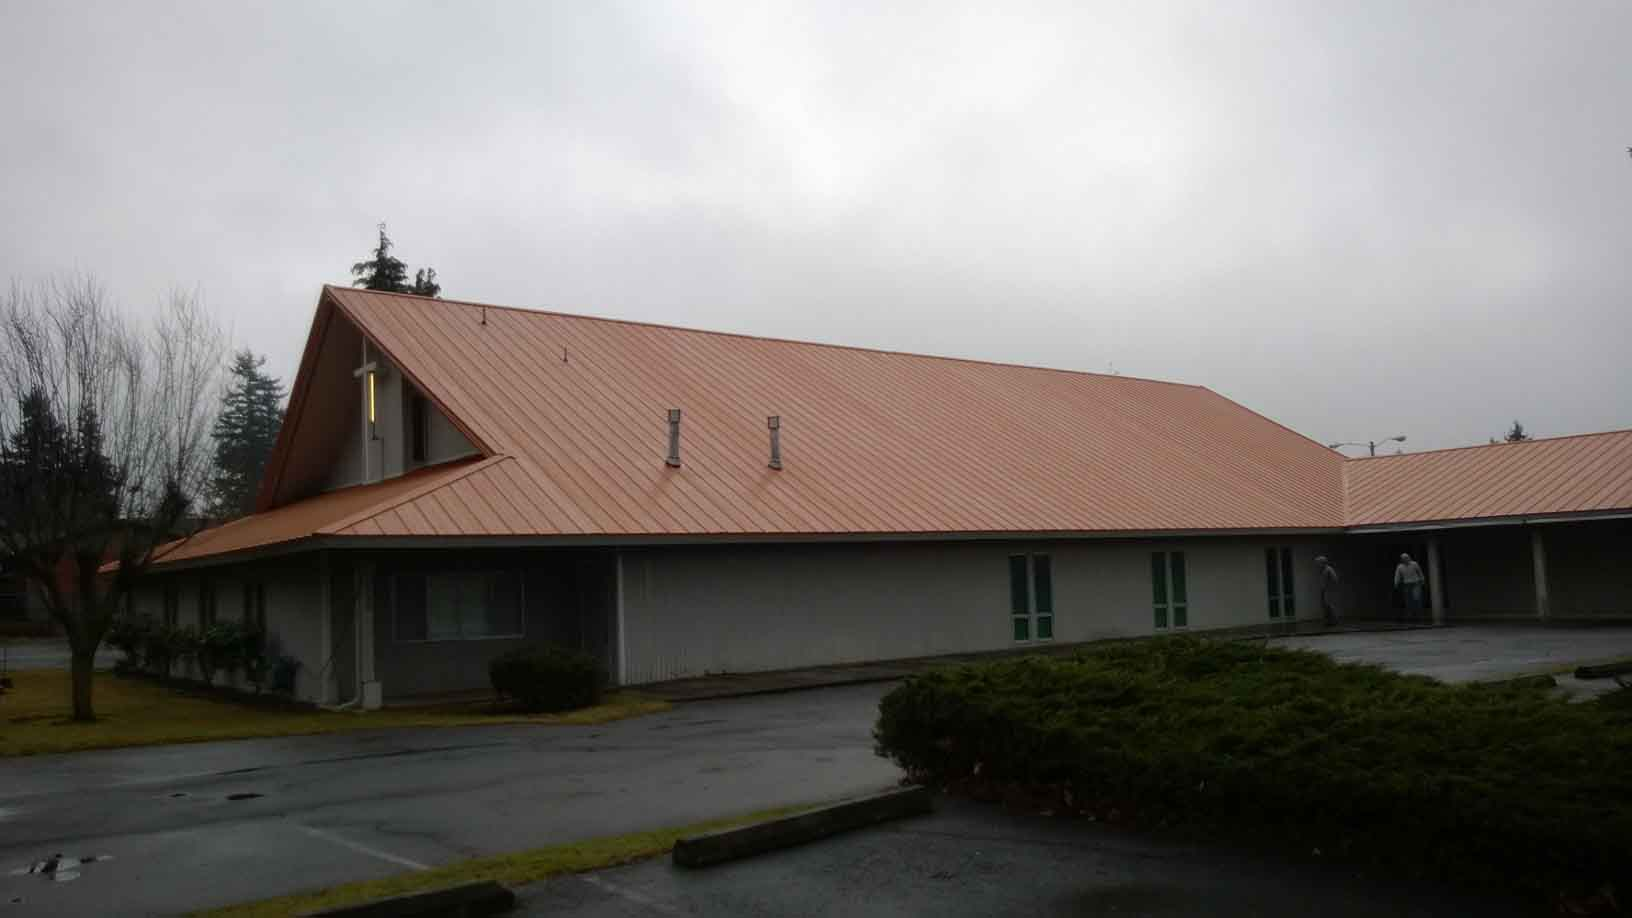 22,000sq. ft. roof on church